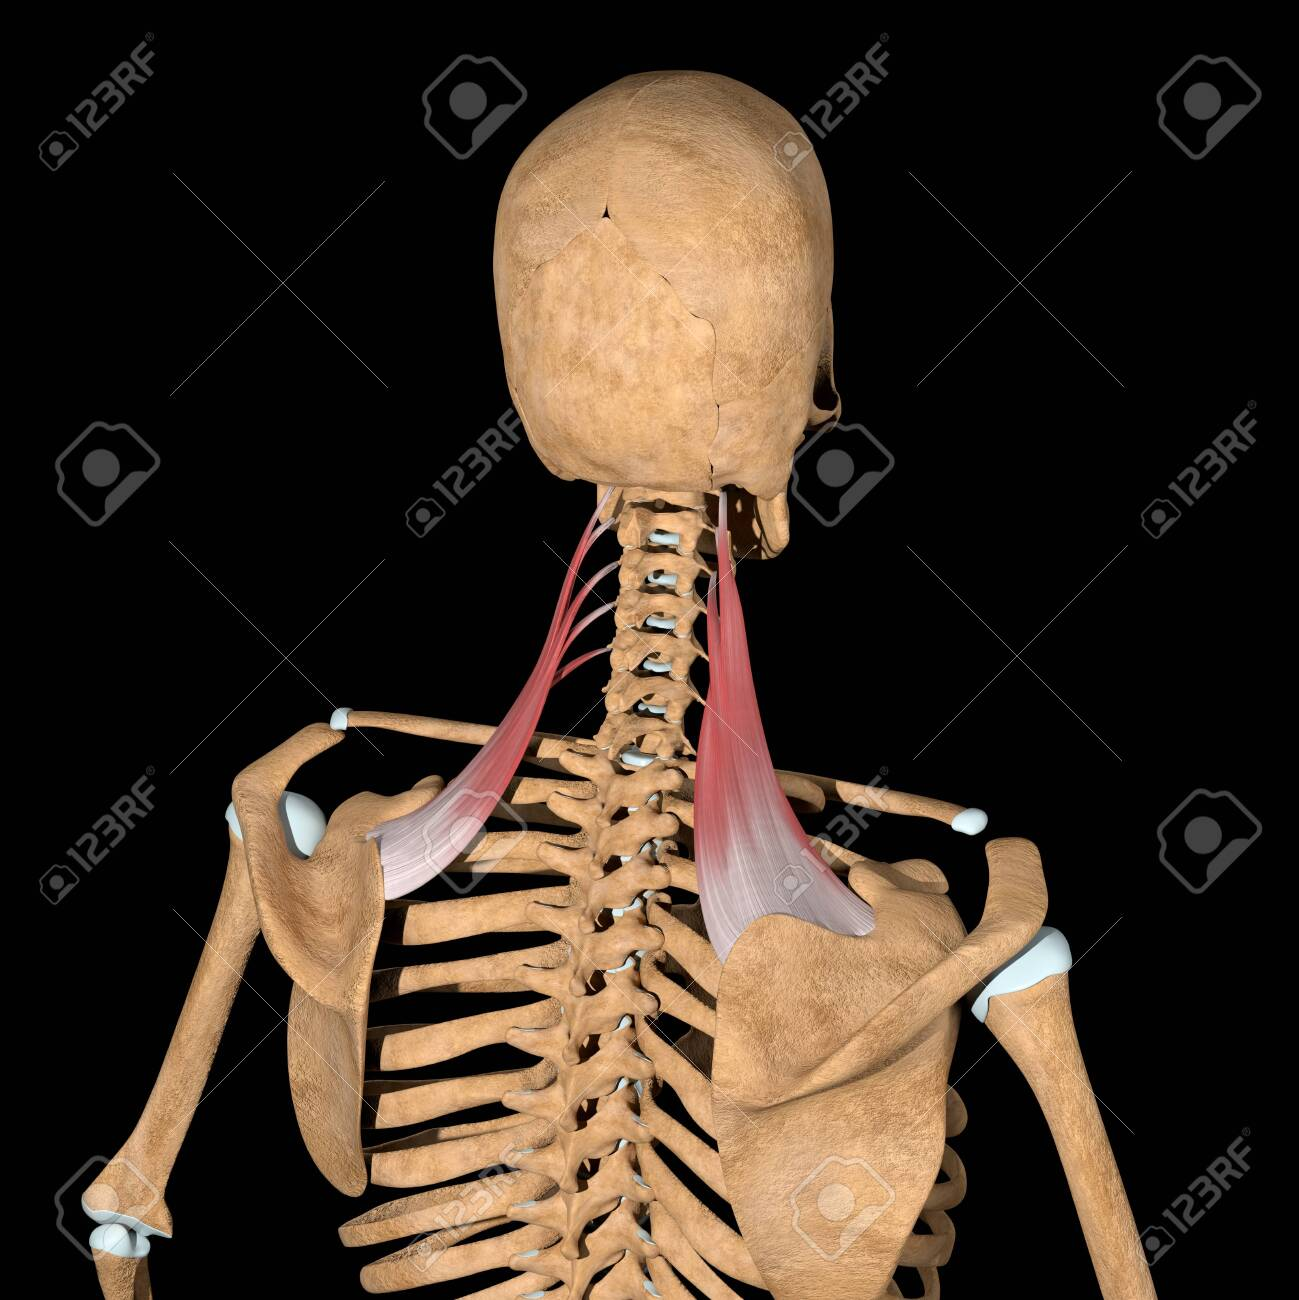 This 3d illustration shows the levator scapulae muscles on skeleton - 141774748